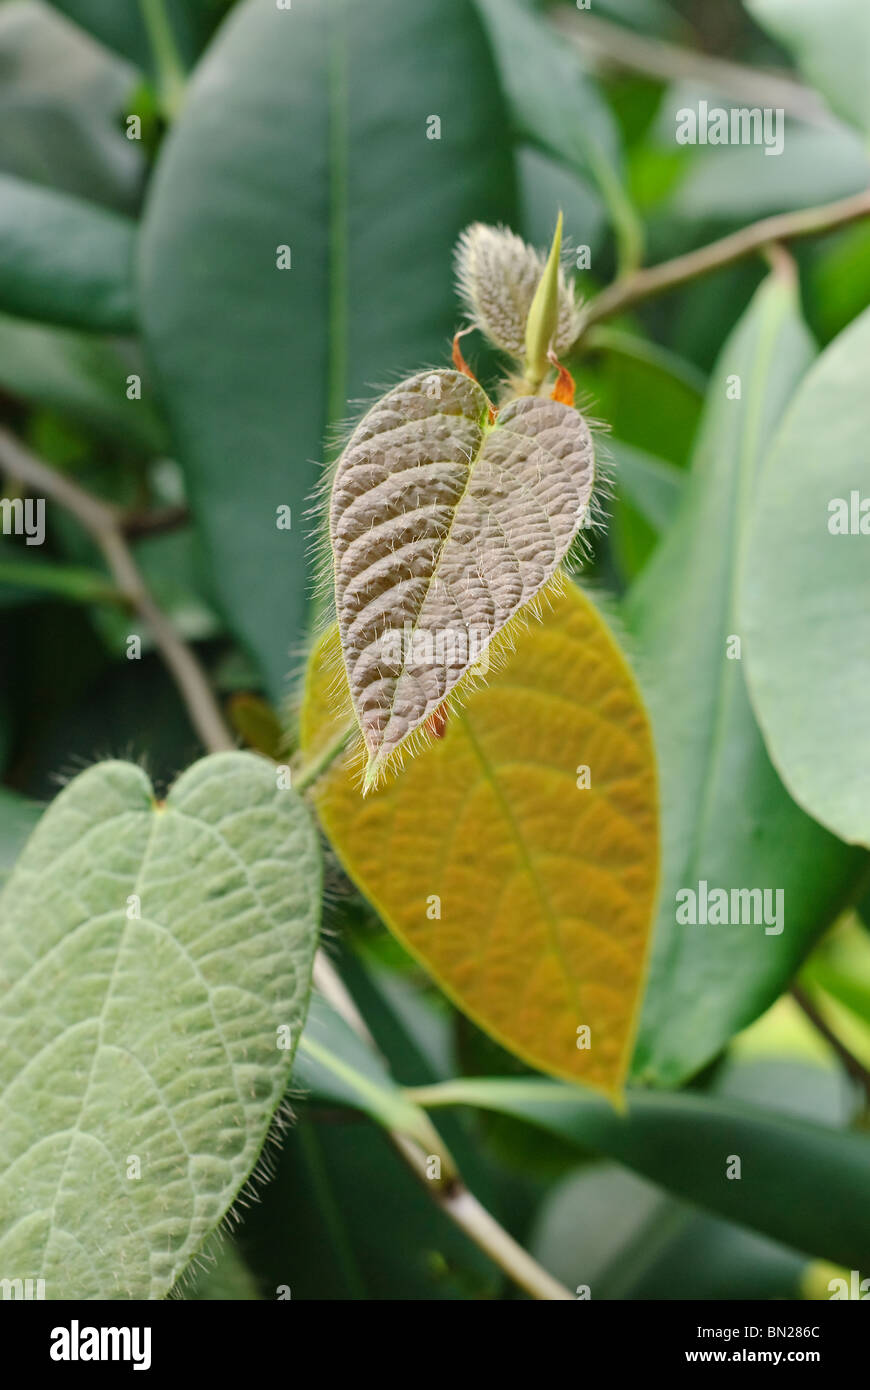 Ficus villosa, of the Fig family is a creeping vine that has stiff hairs on it's leaves to prevent animals from - Stock Image